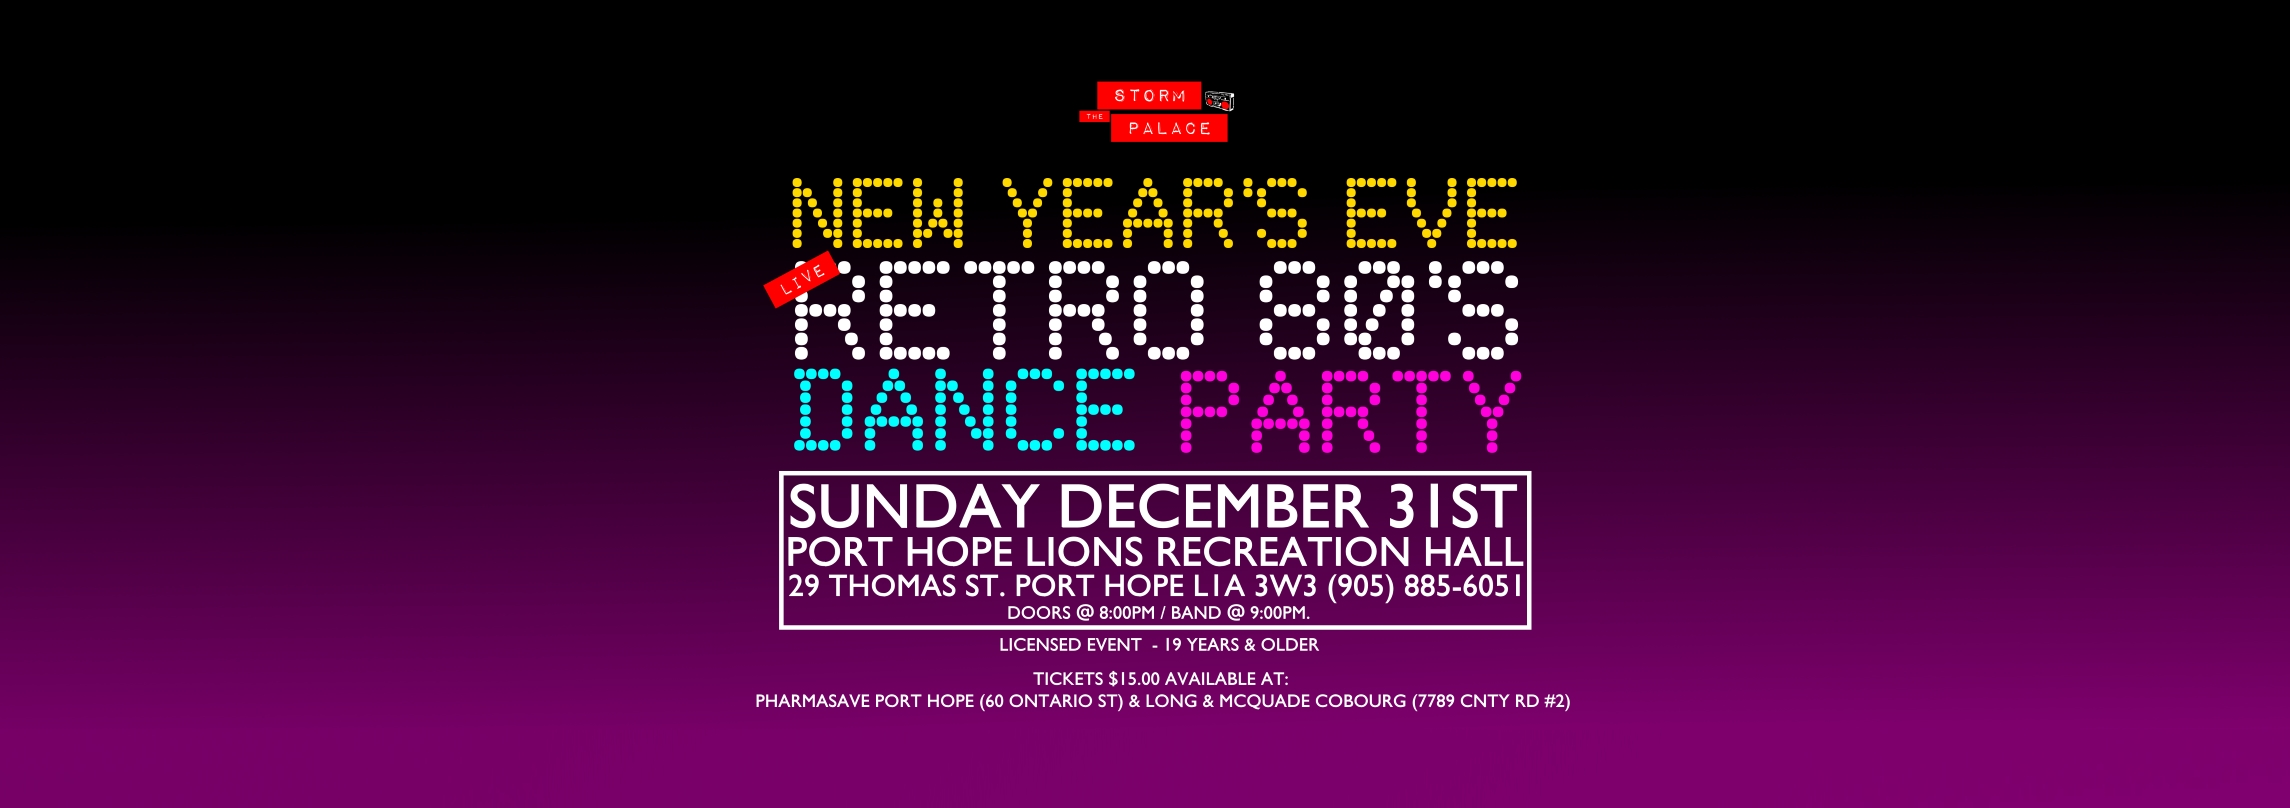 Storm The Palace Toronto Retro 80s 90s Retro Cover party Band New Year's Eve LIVE Retro 80's Dance Party